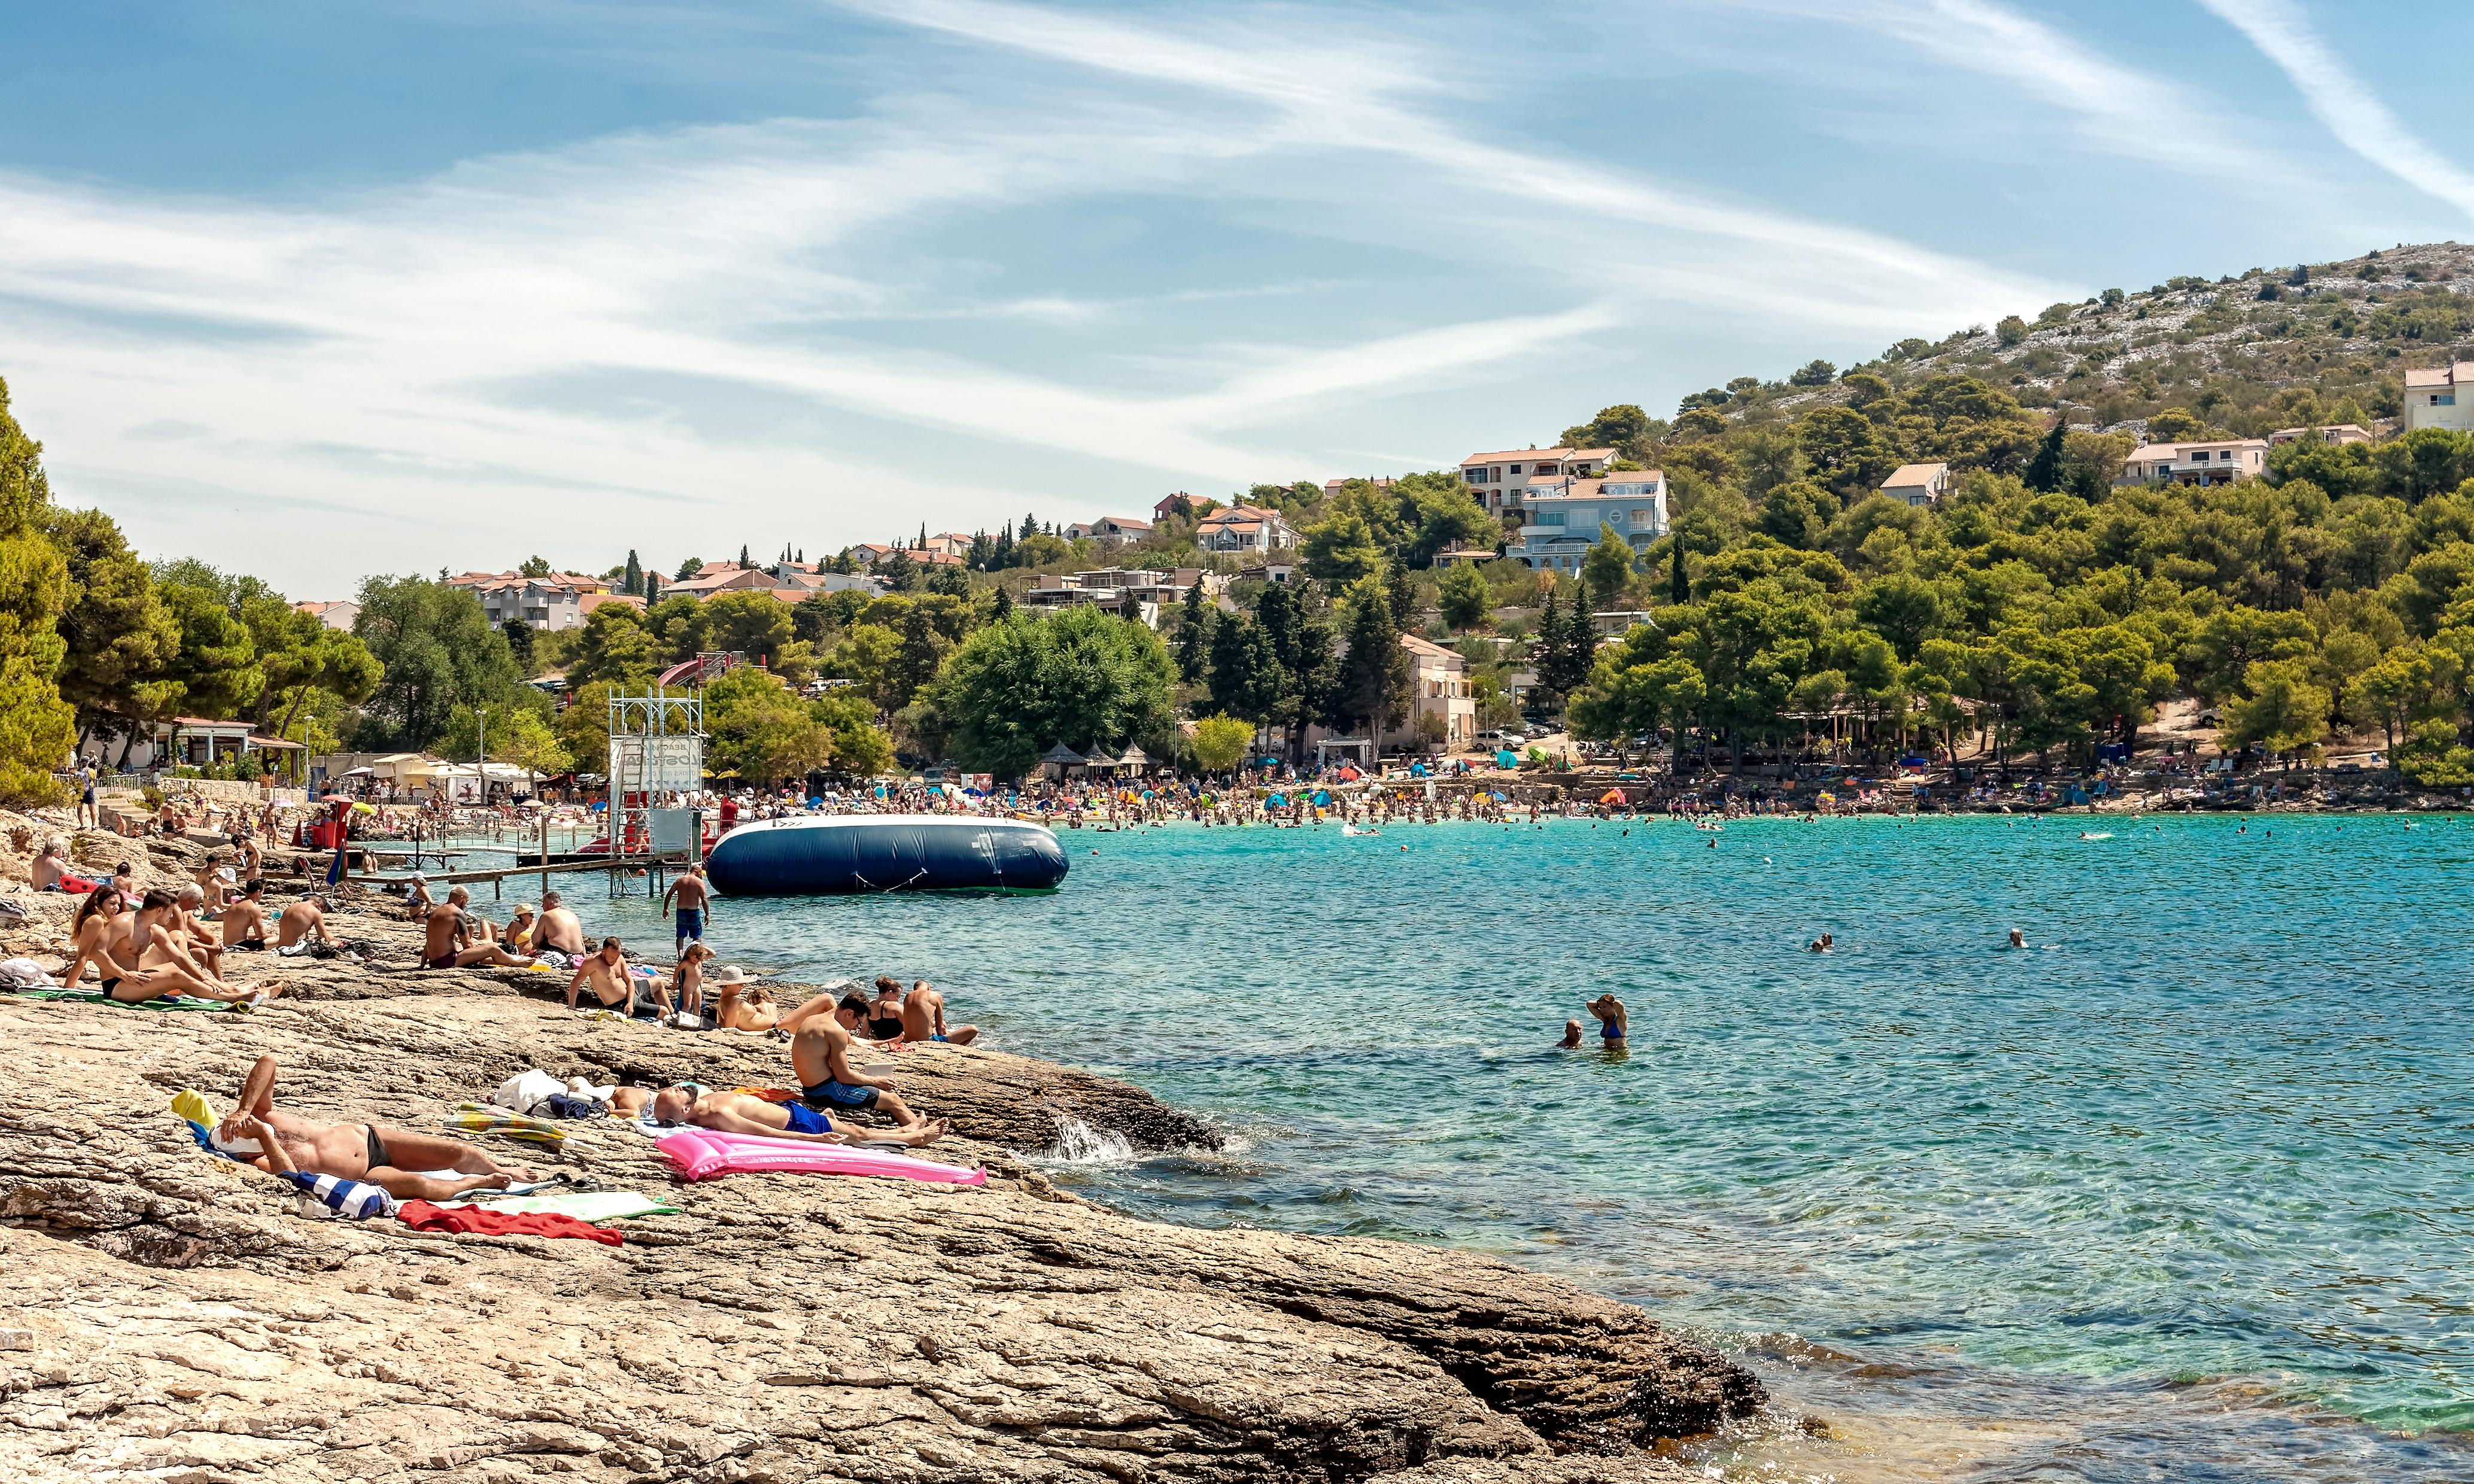 In Croatia, no one can believe I'm famous – and it hurts